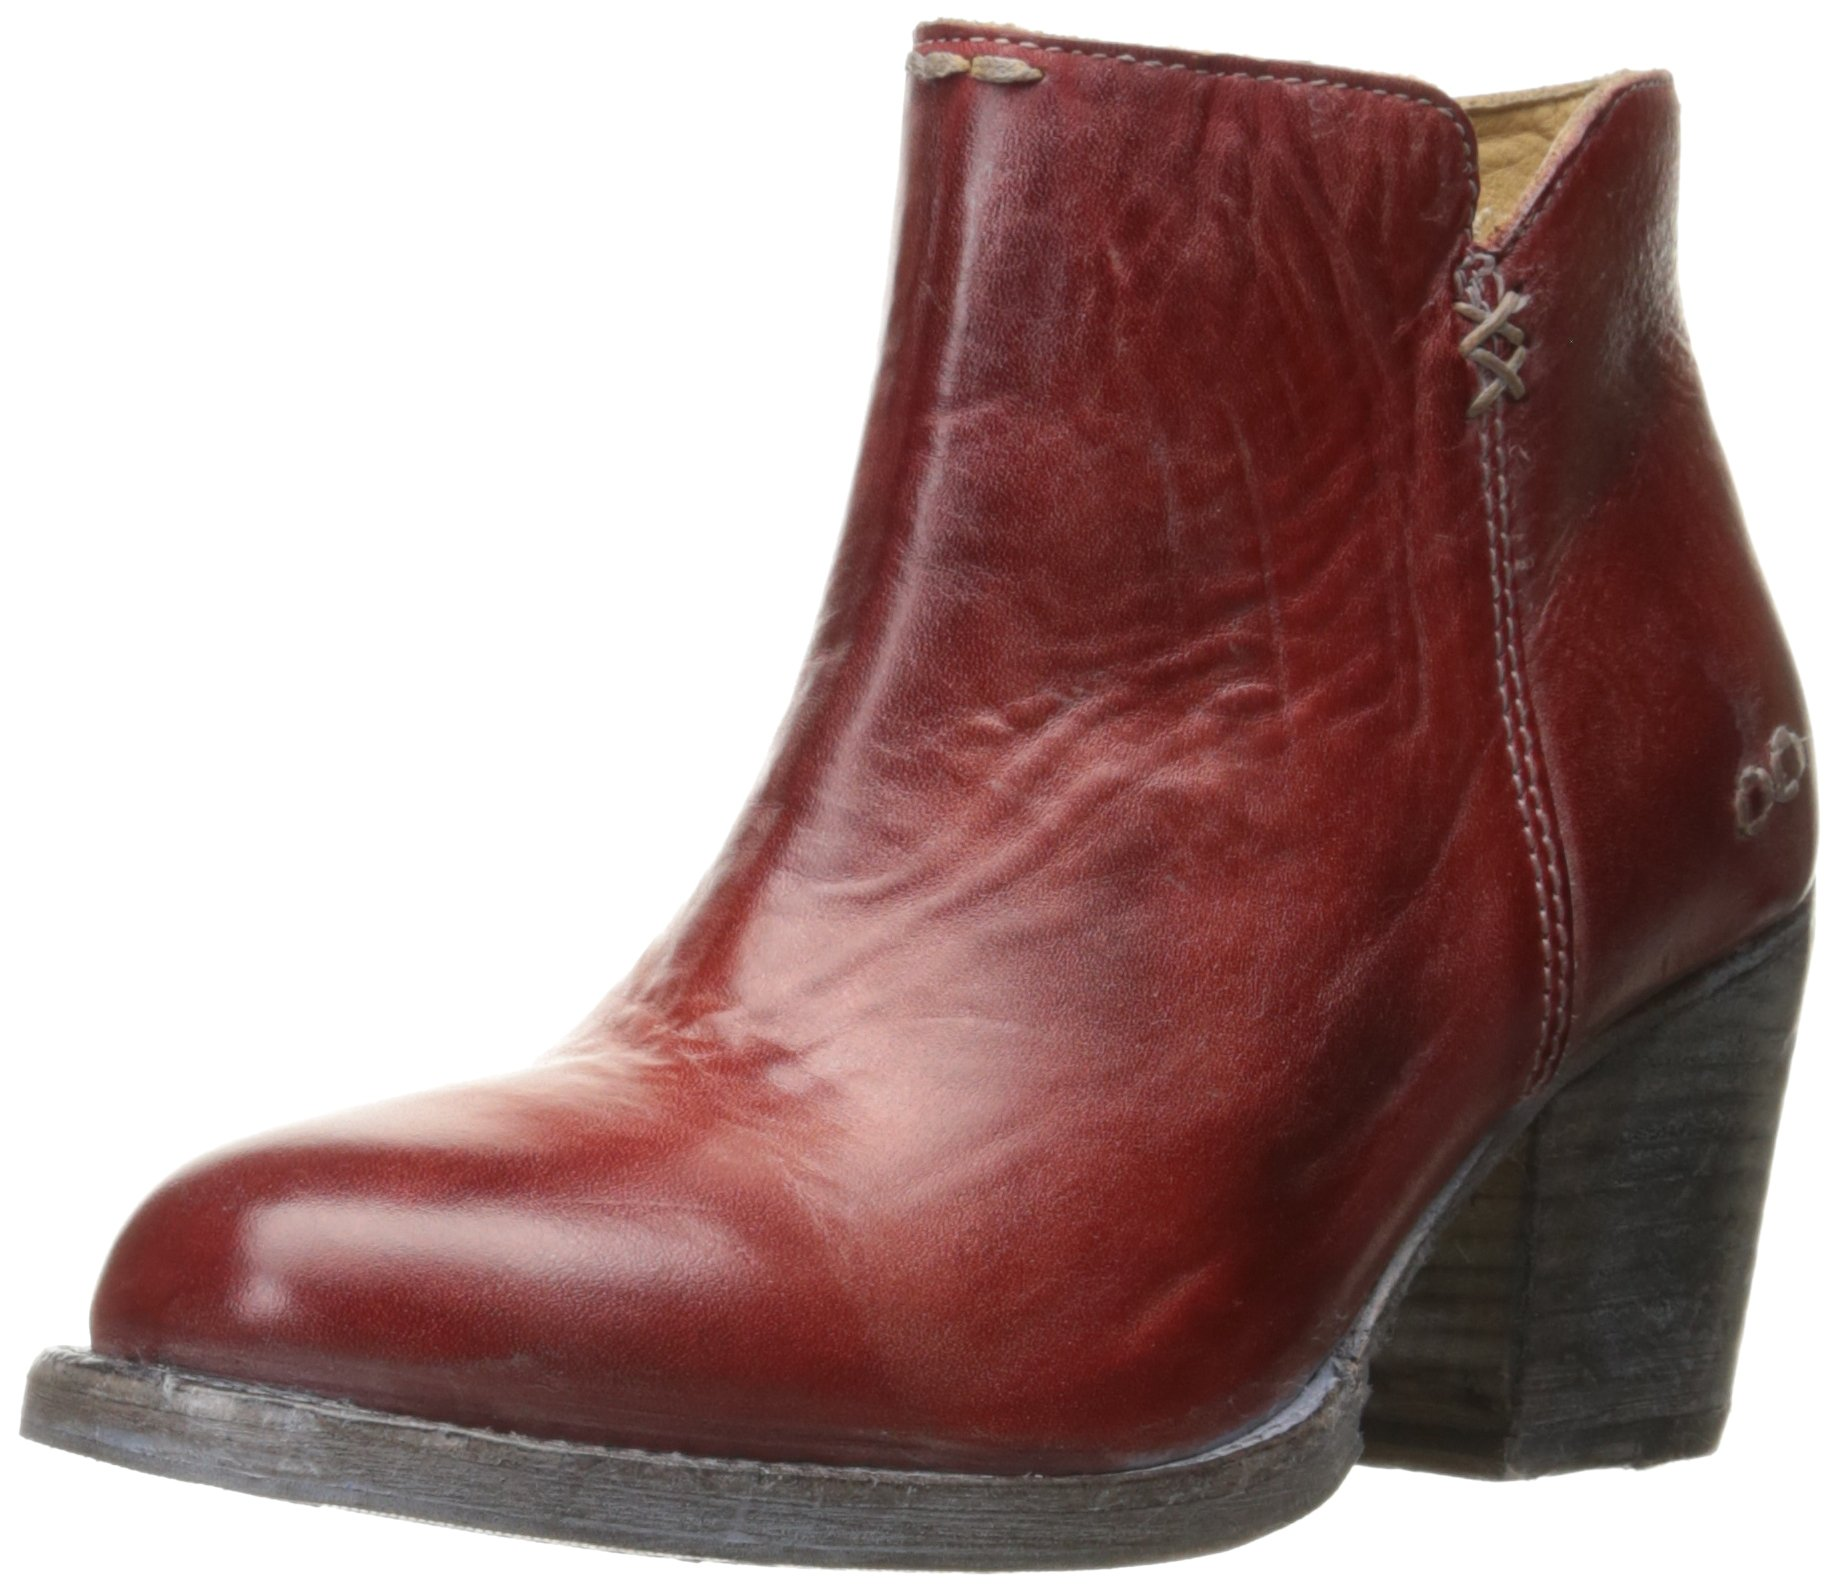 Bed|Stu Women's Yell Boot, Red Rustic/Blue, 8.5 M US